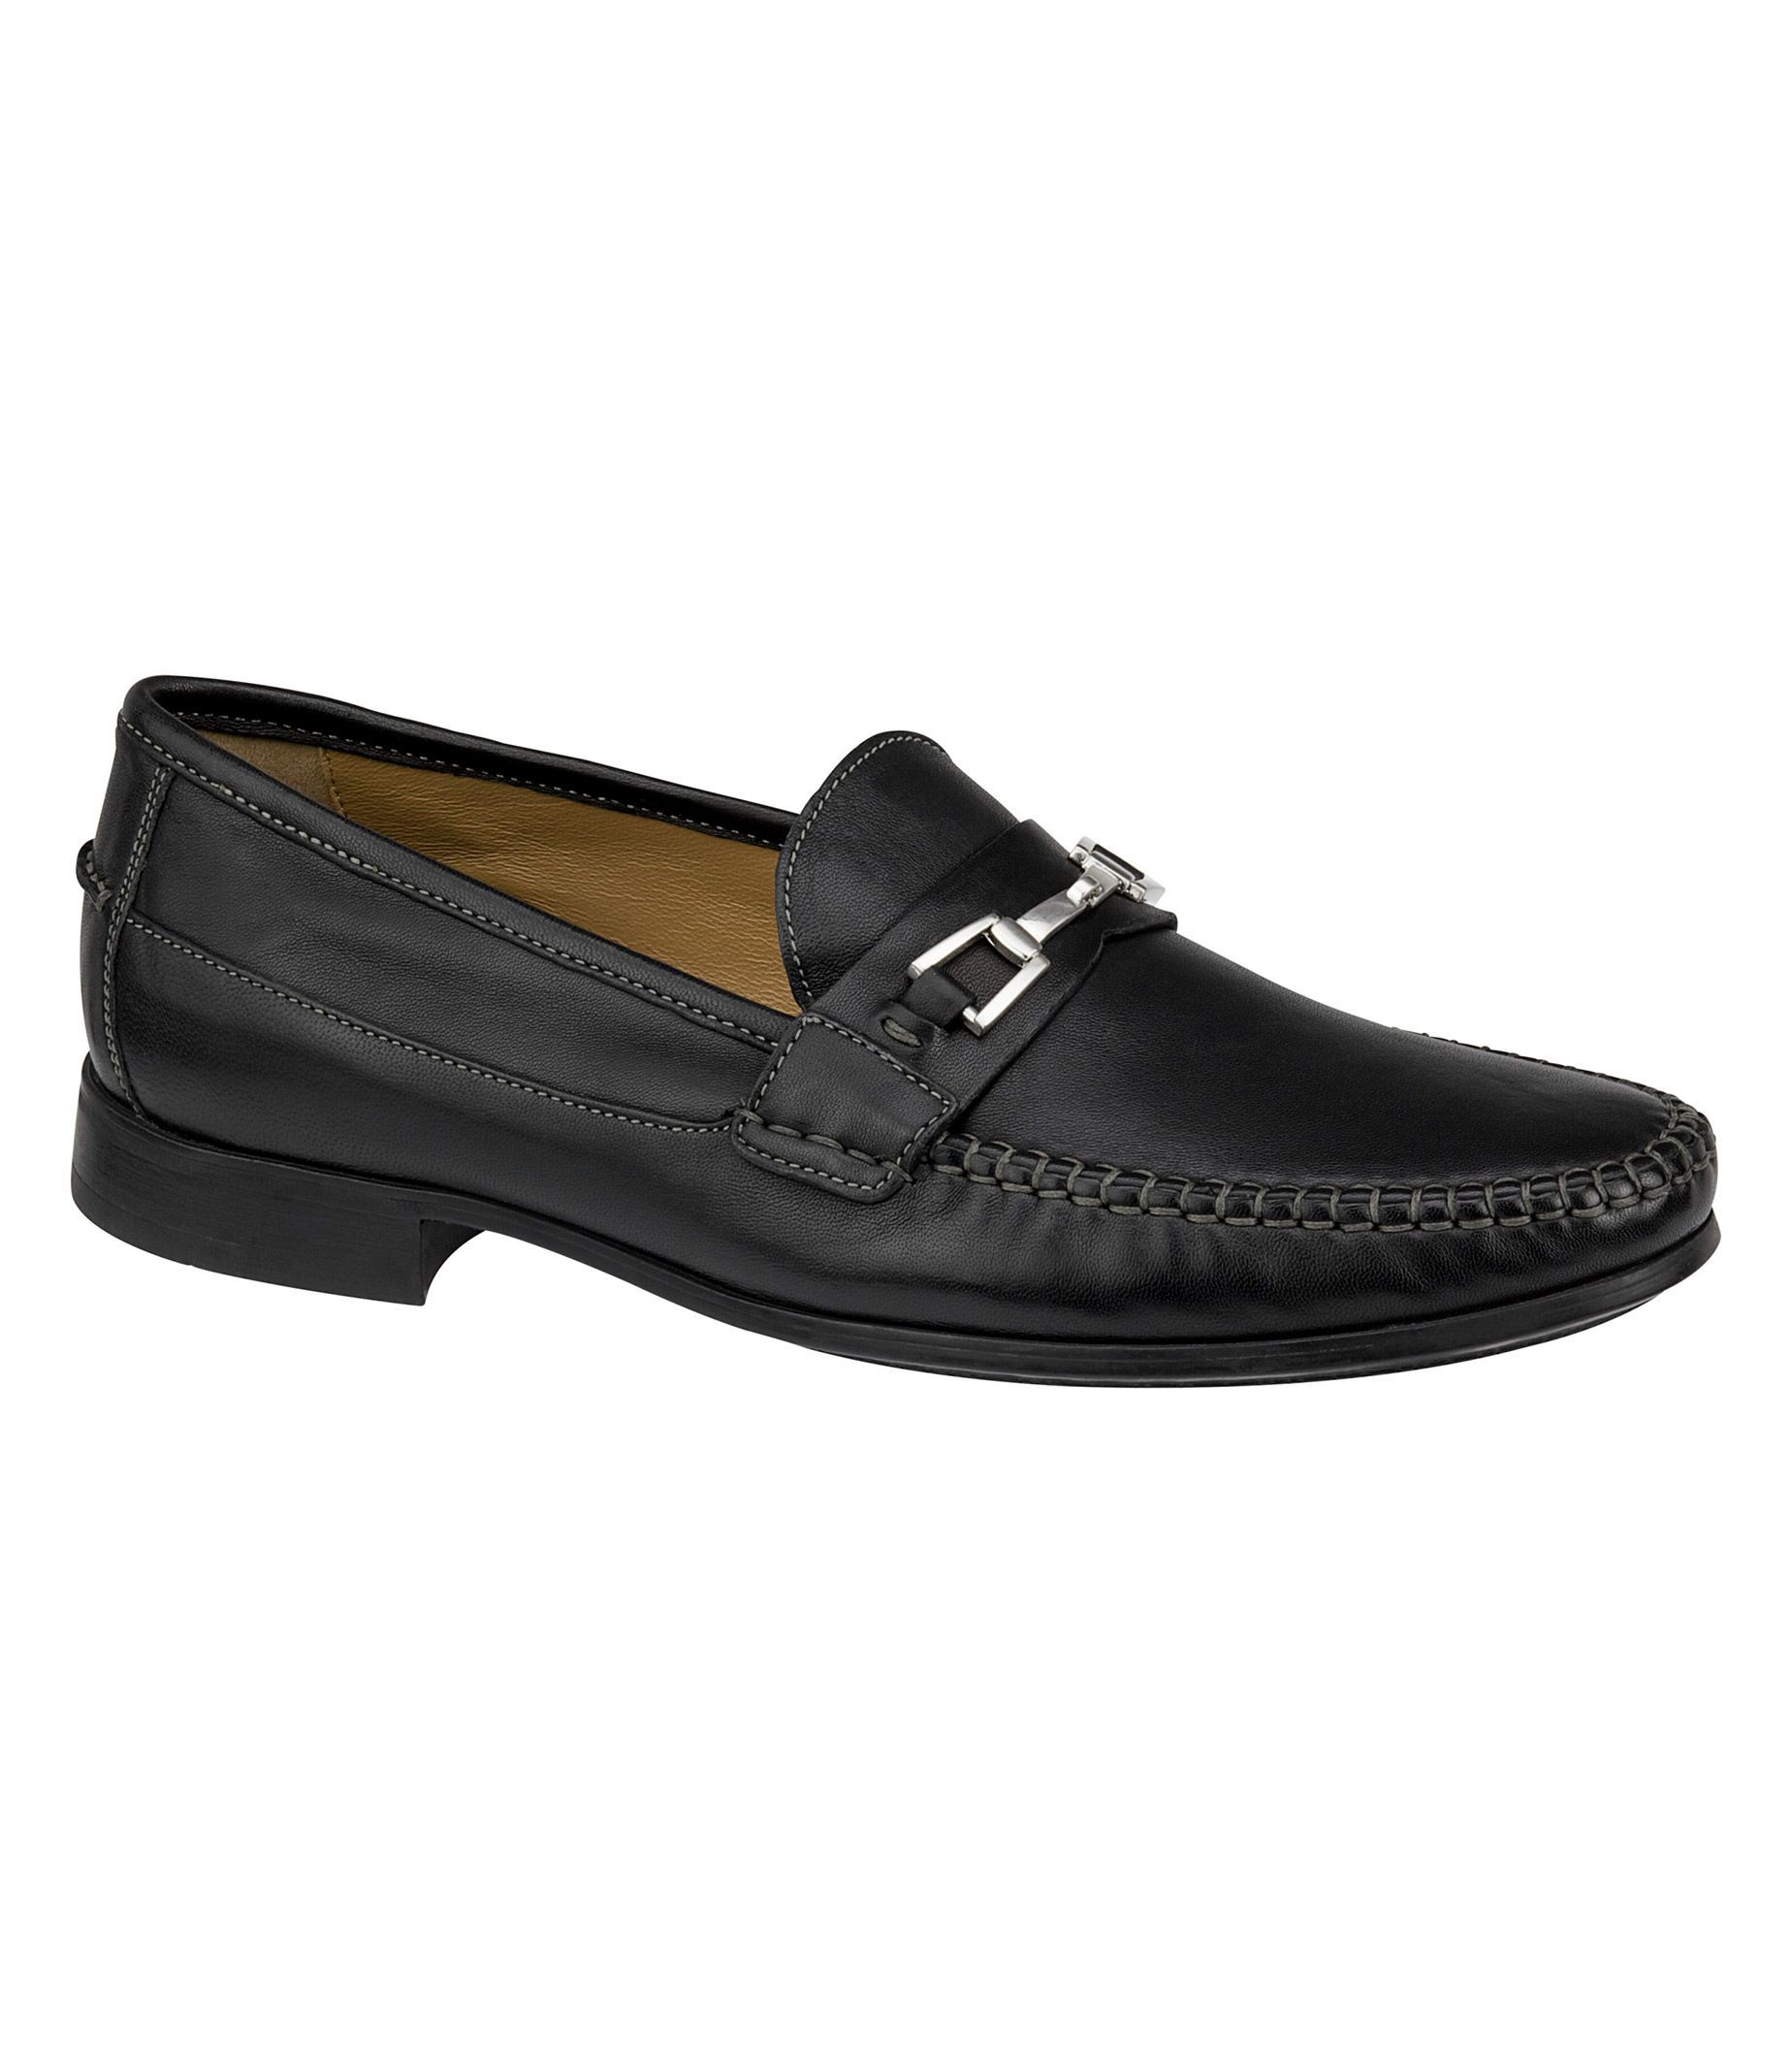 Cresswell Bit Shoe by Johnston and Murphy (With